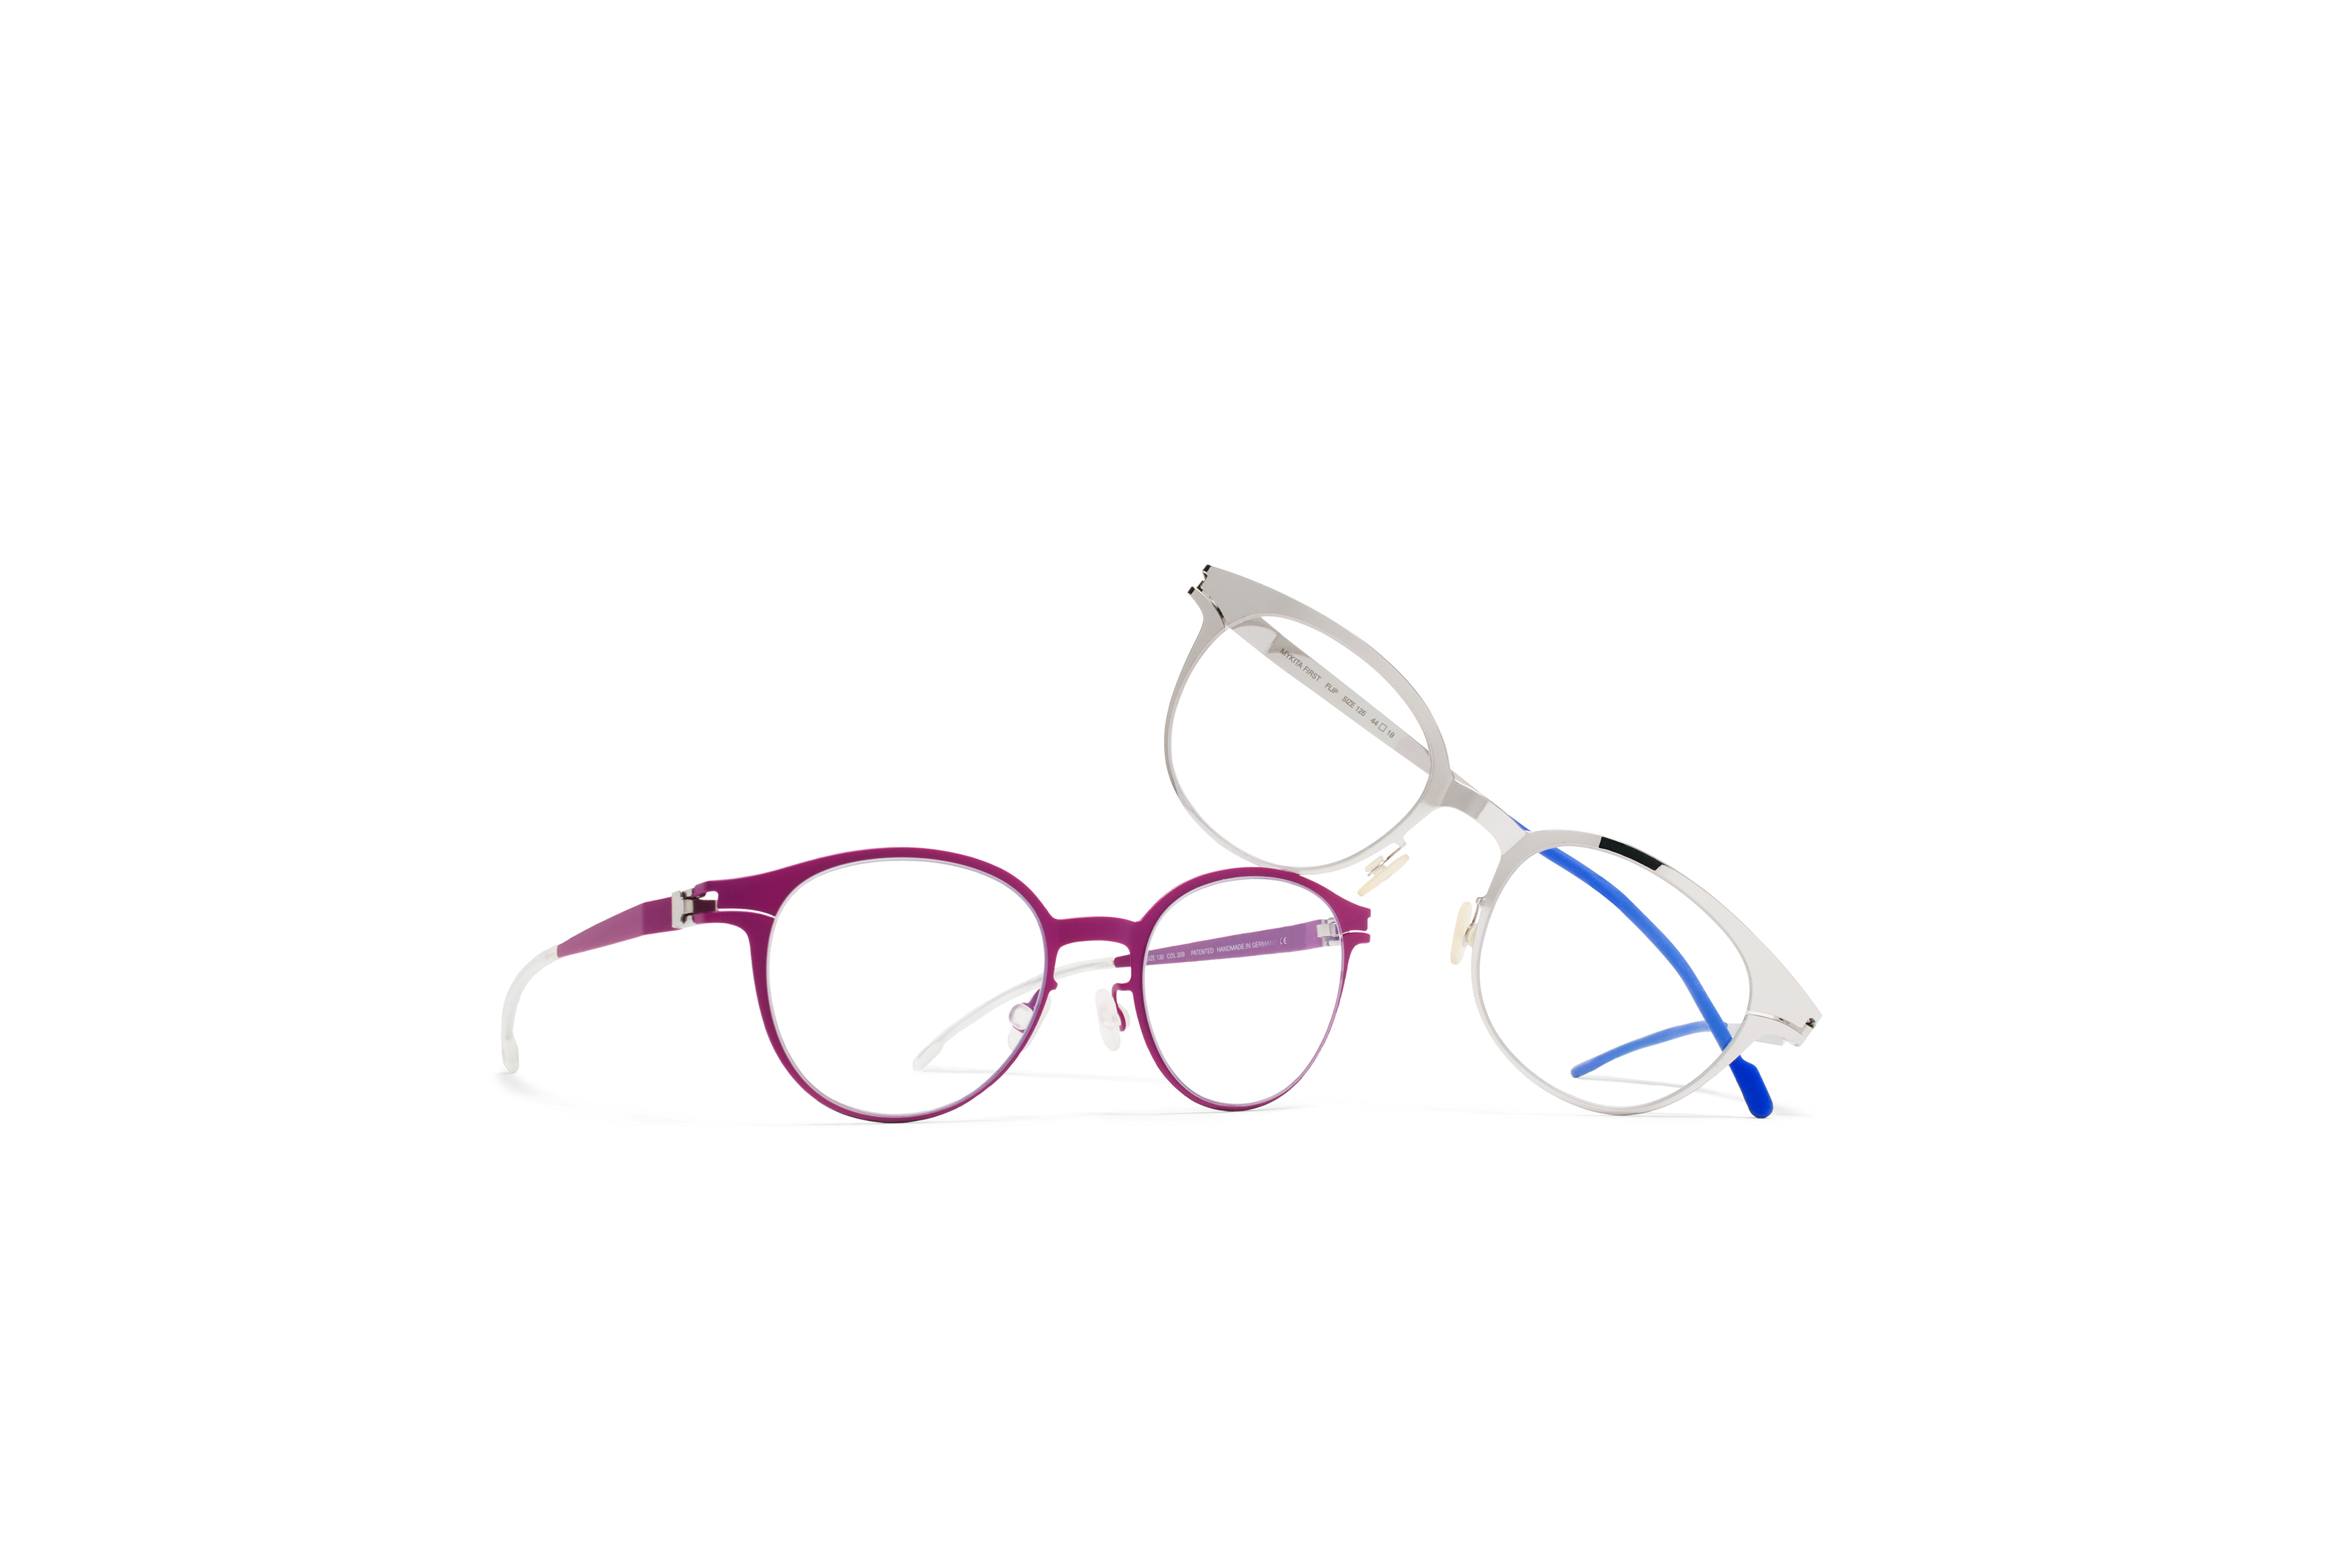 MYKITA First Rx Flip Shinysilver Clear First Rx Koala R2 Lilac Clear Gs3 Tif